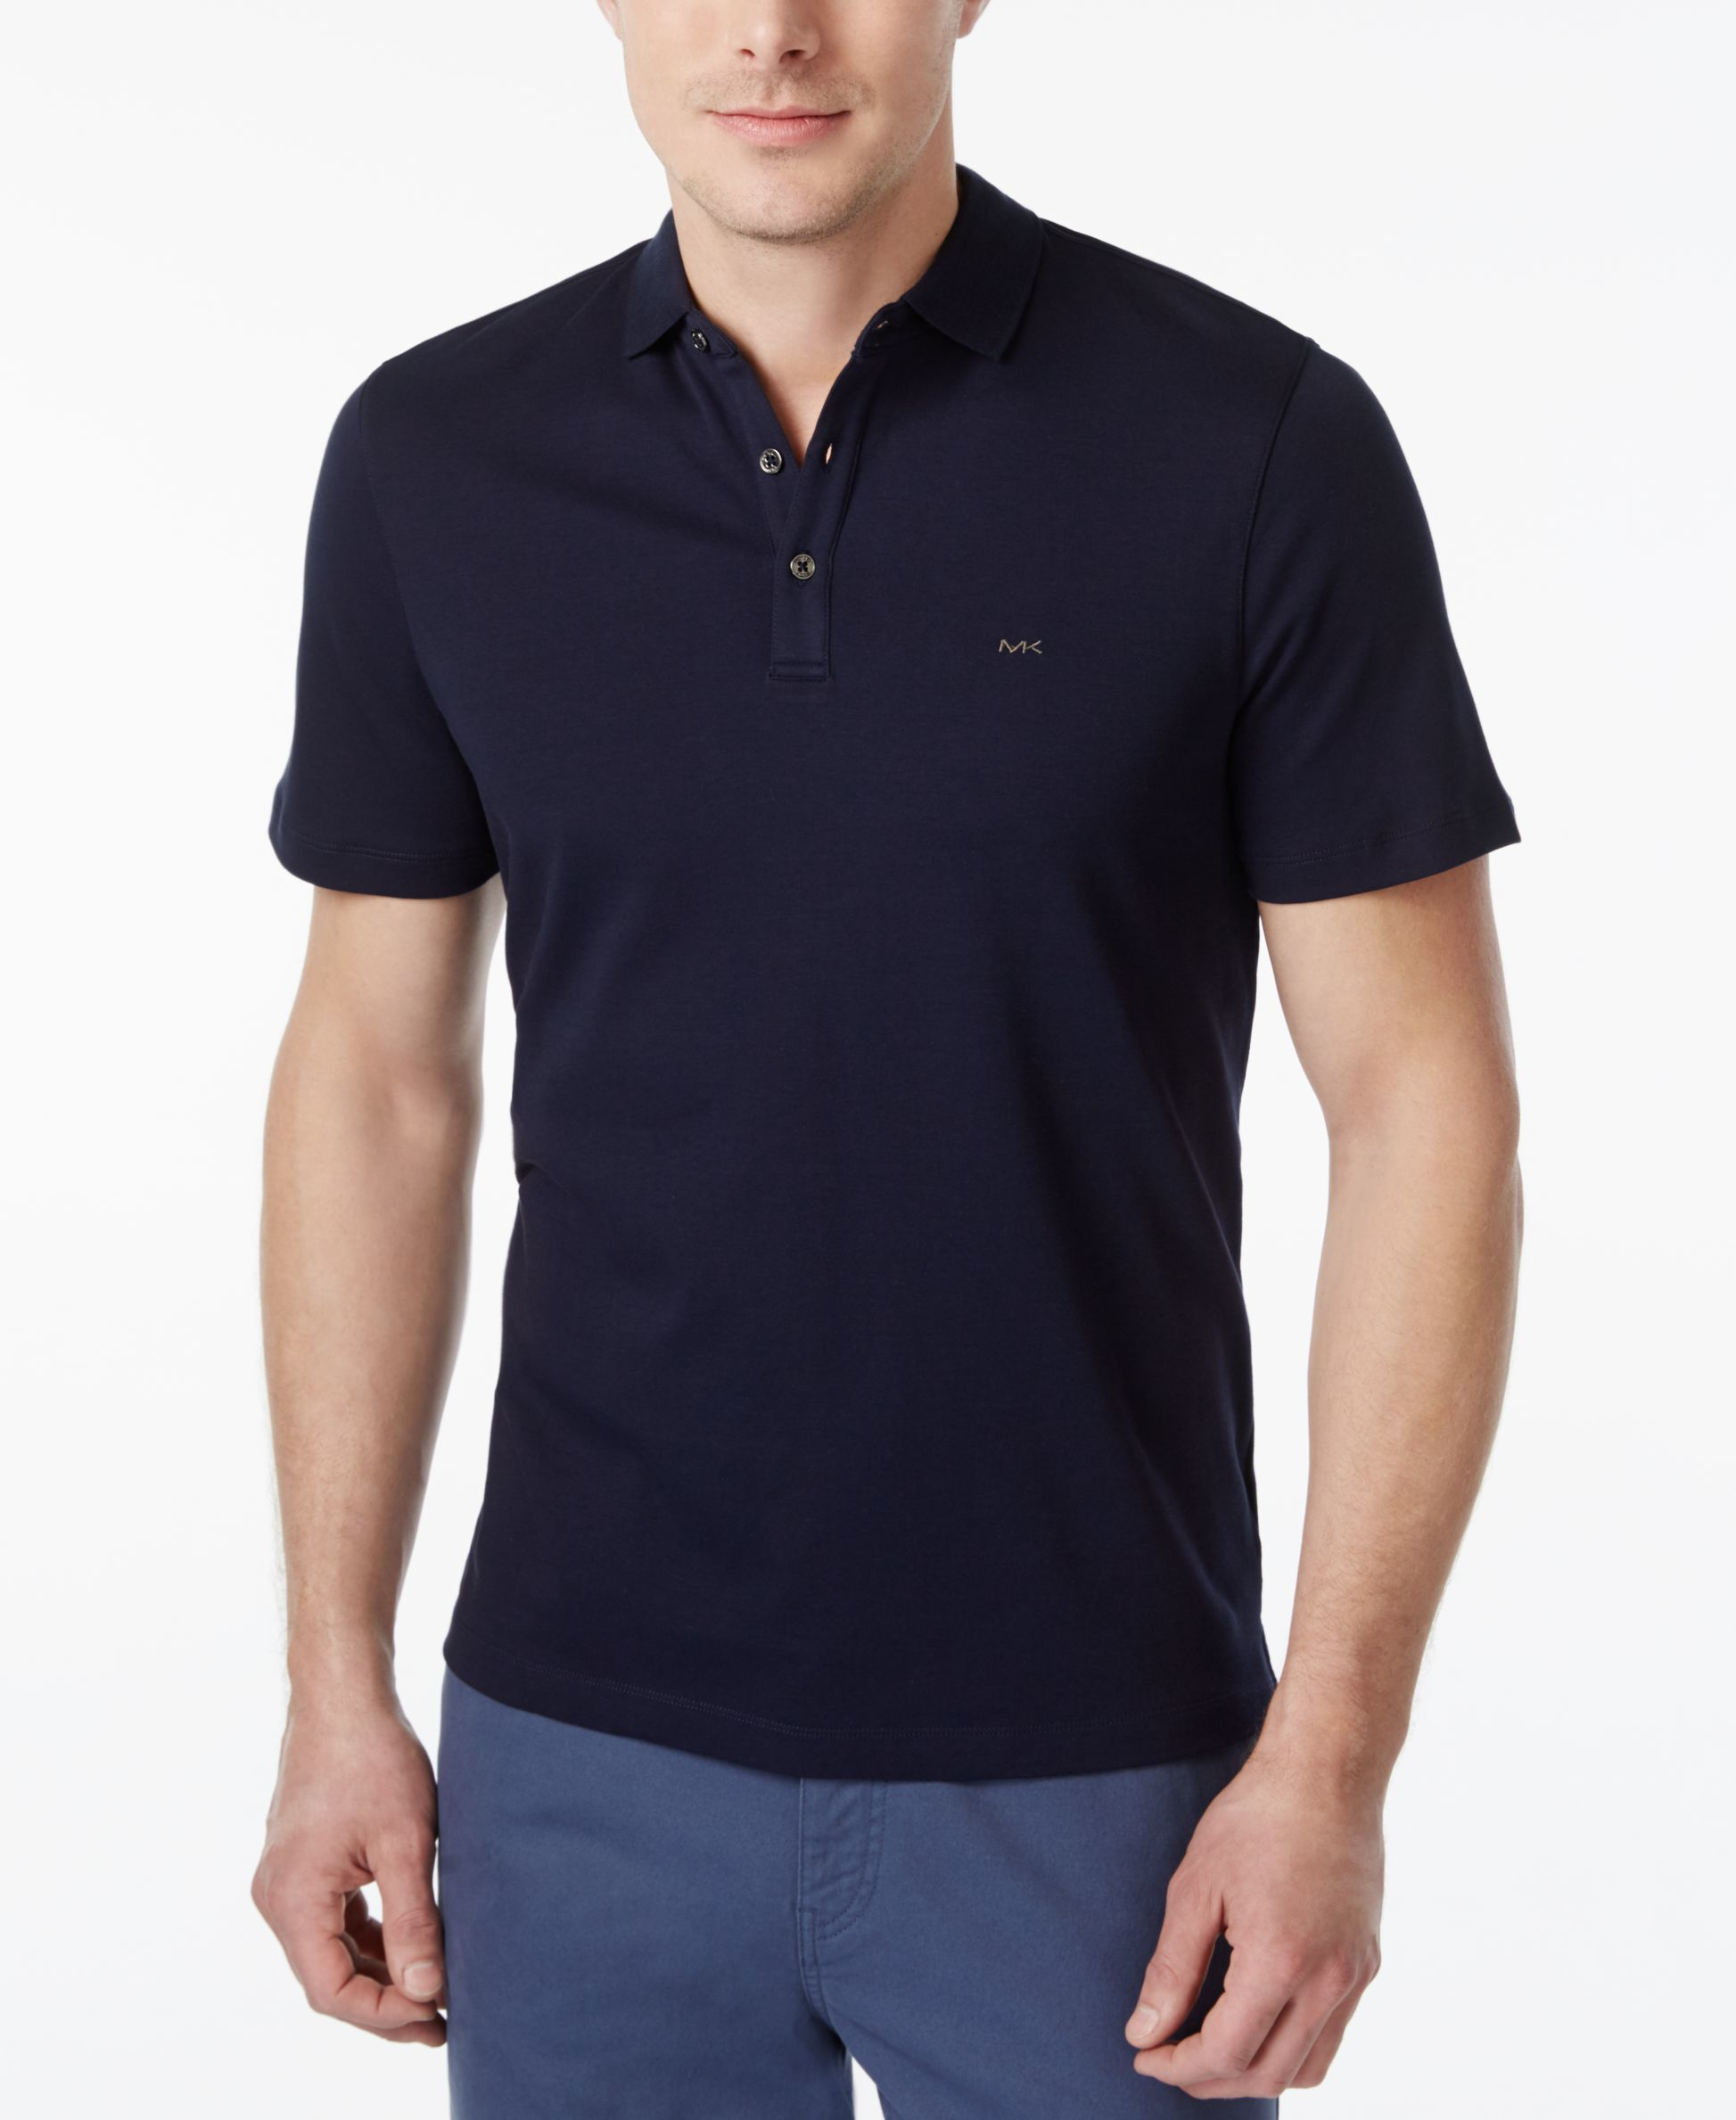 michael kors men 39 s liquid polo shirt in black for men lyst